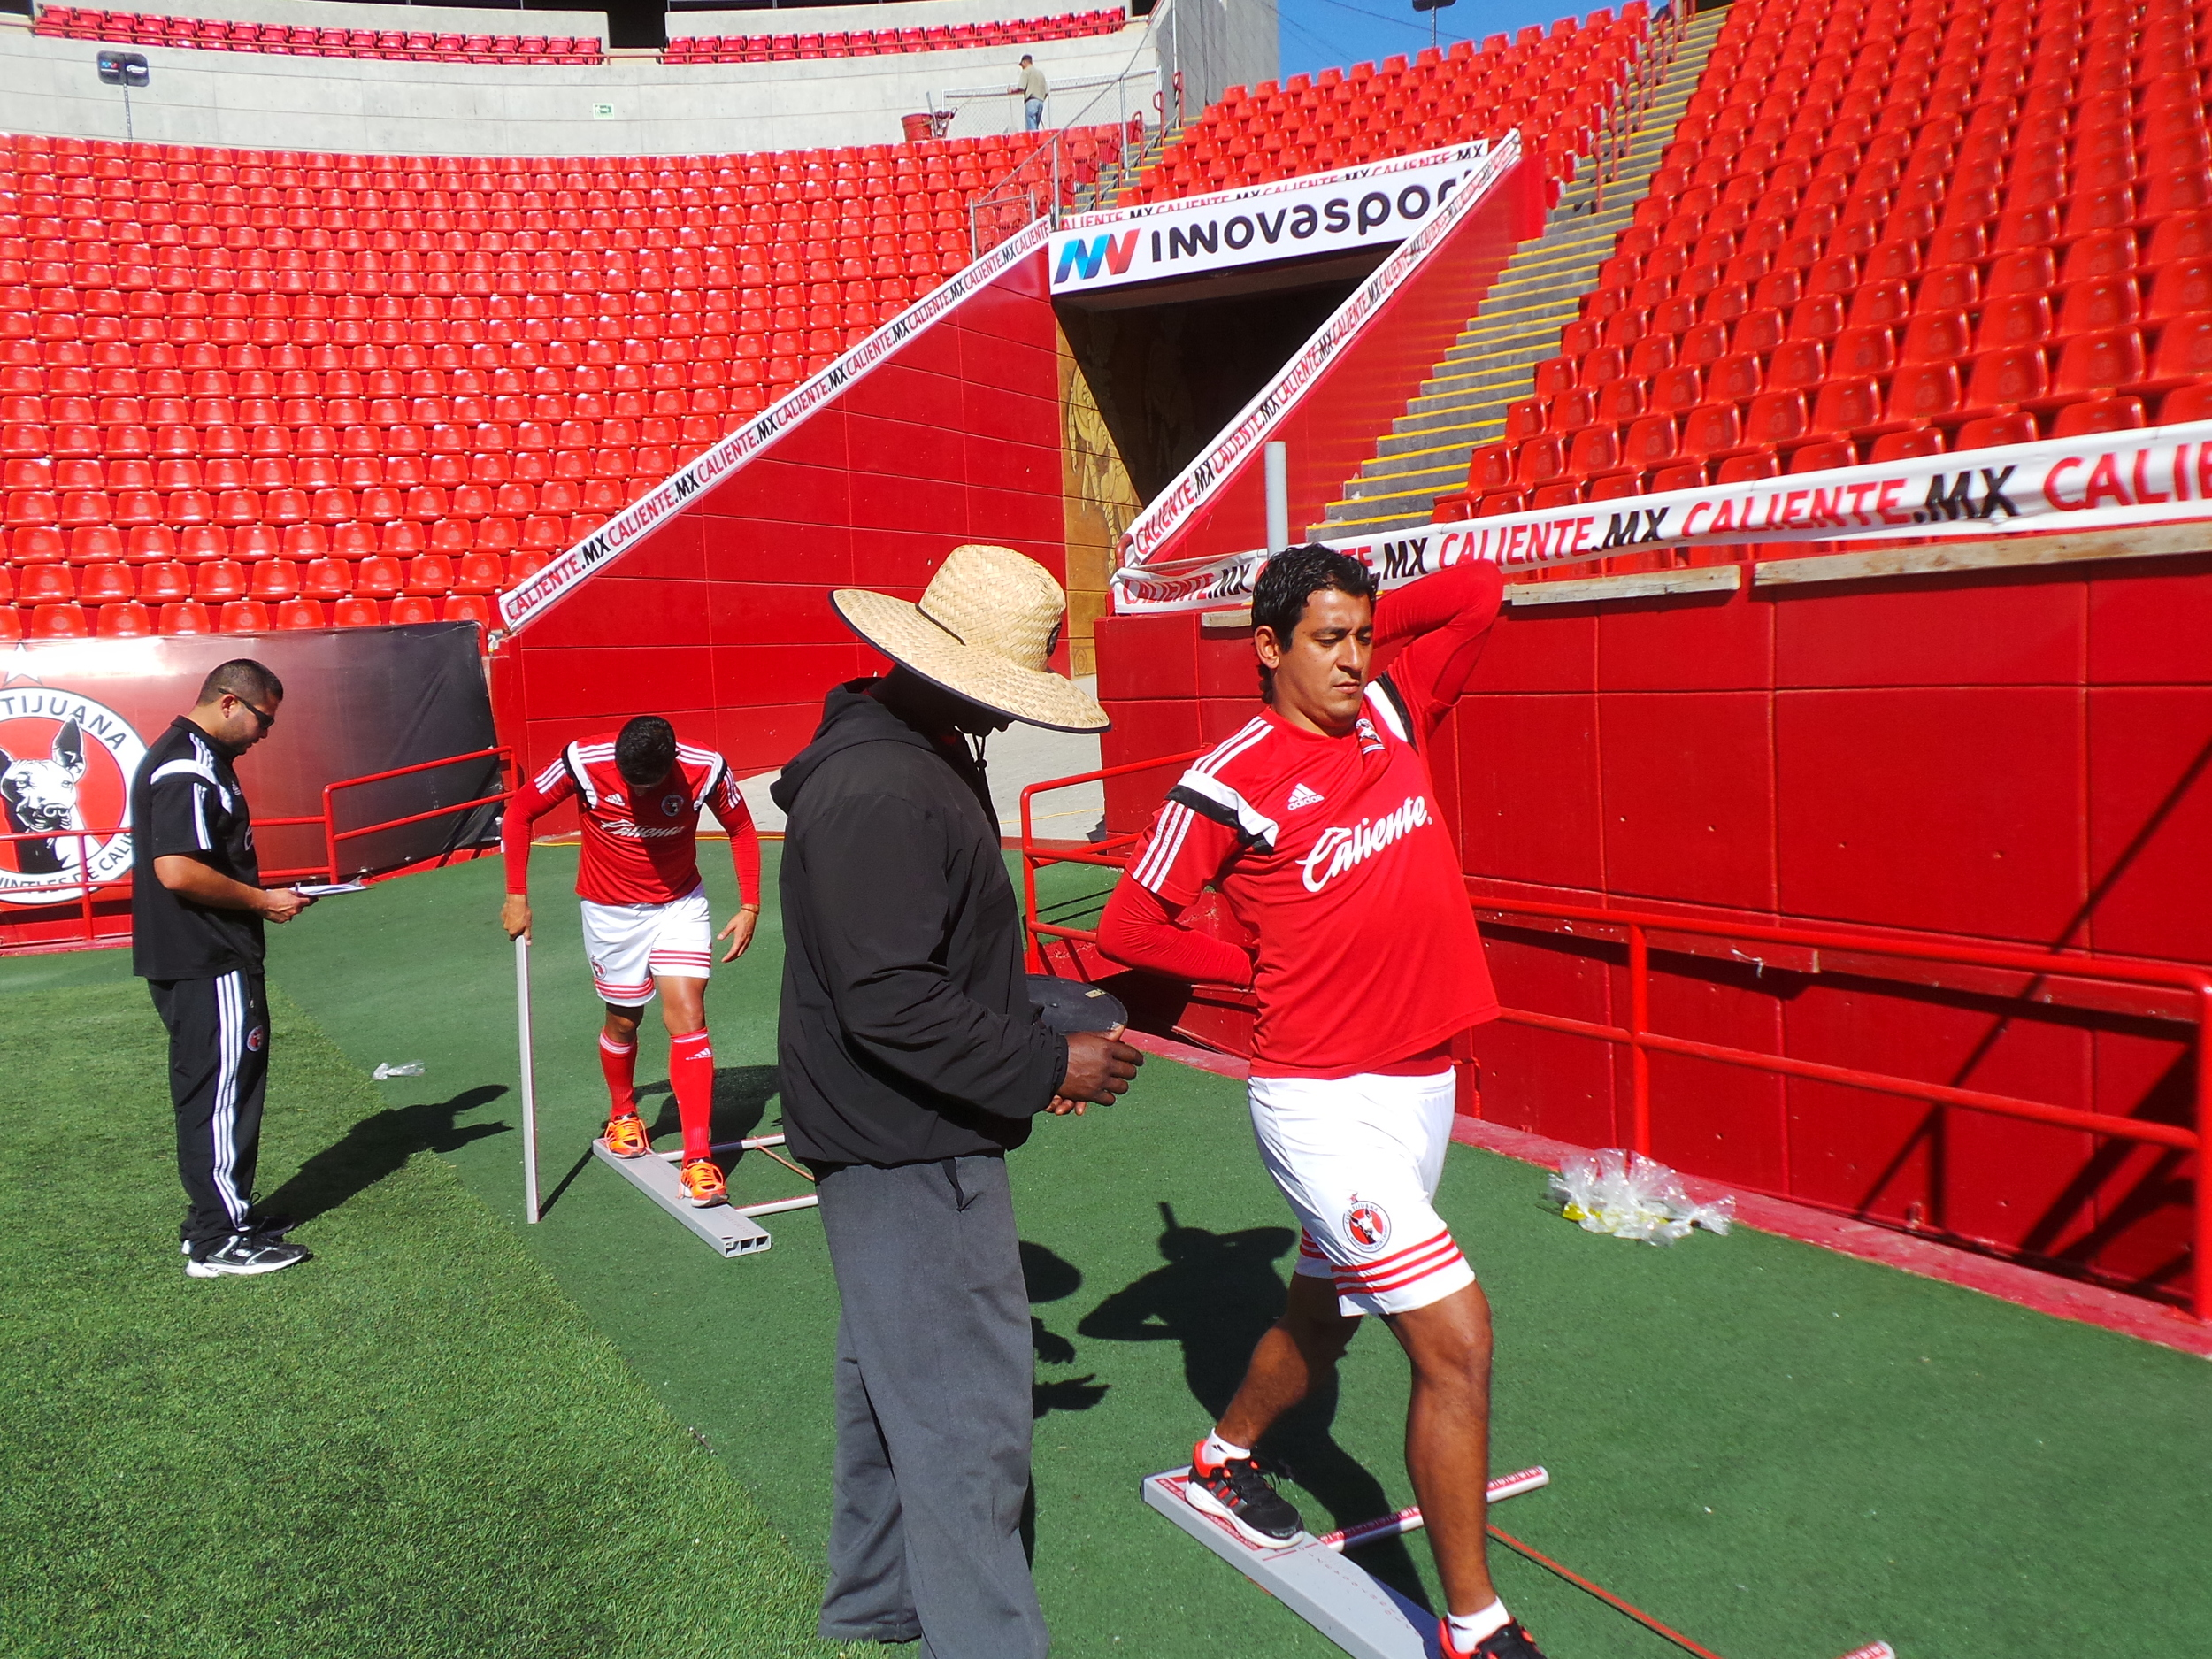 Coach Milo assessing the Xolos.